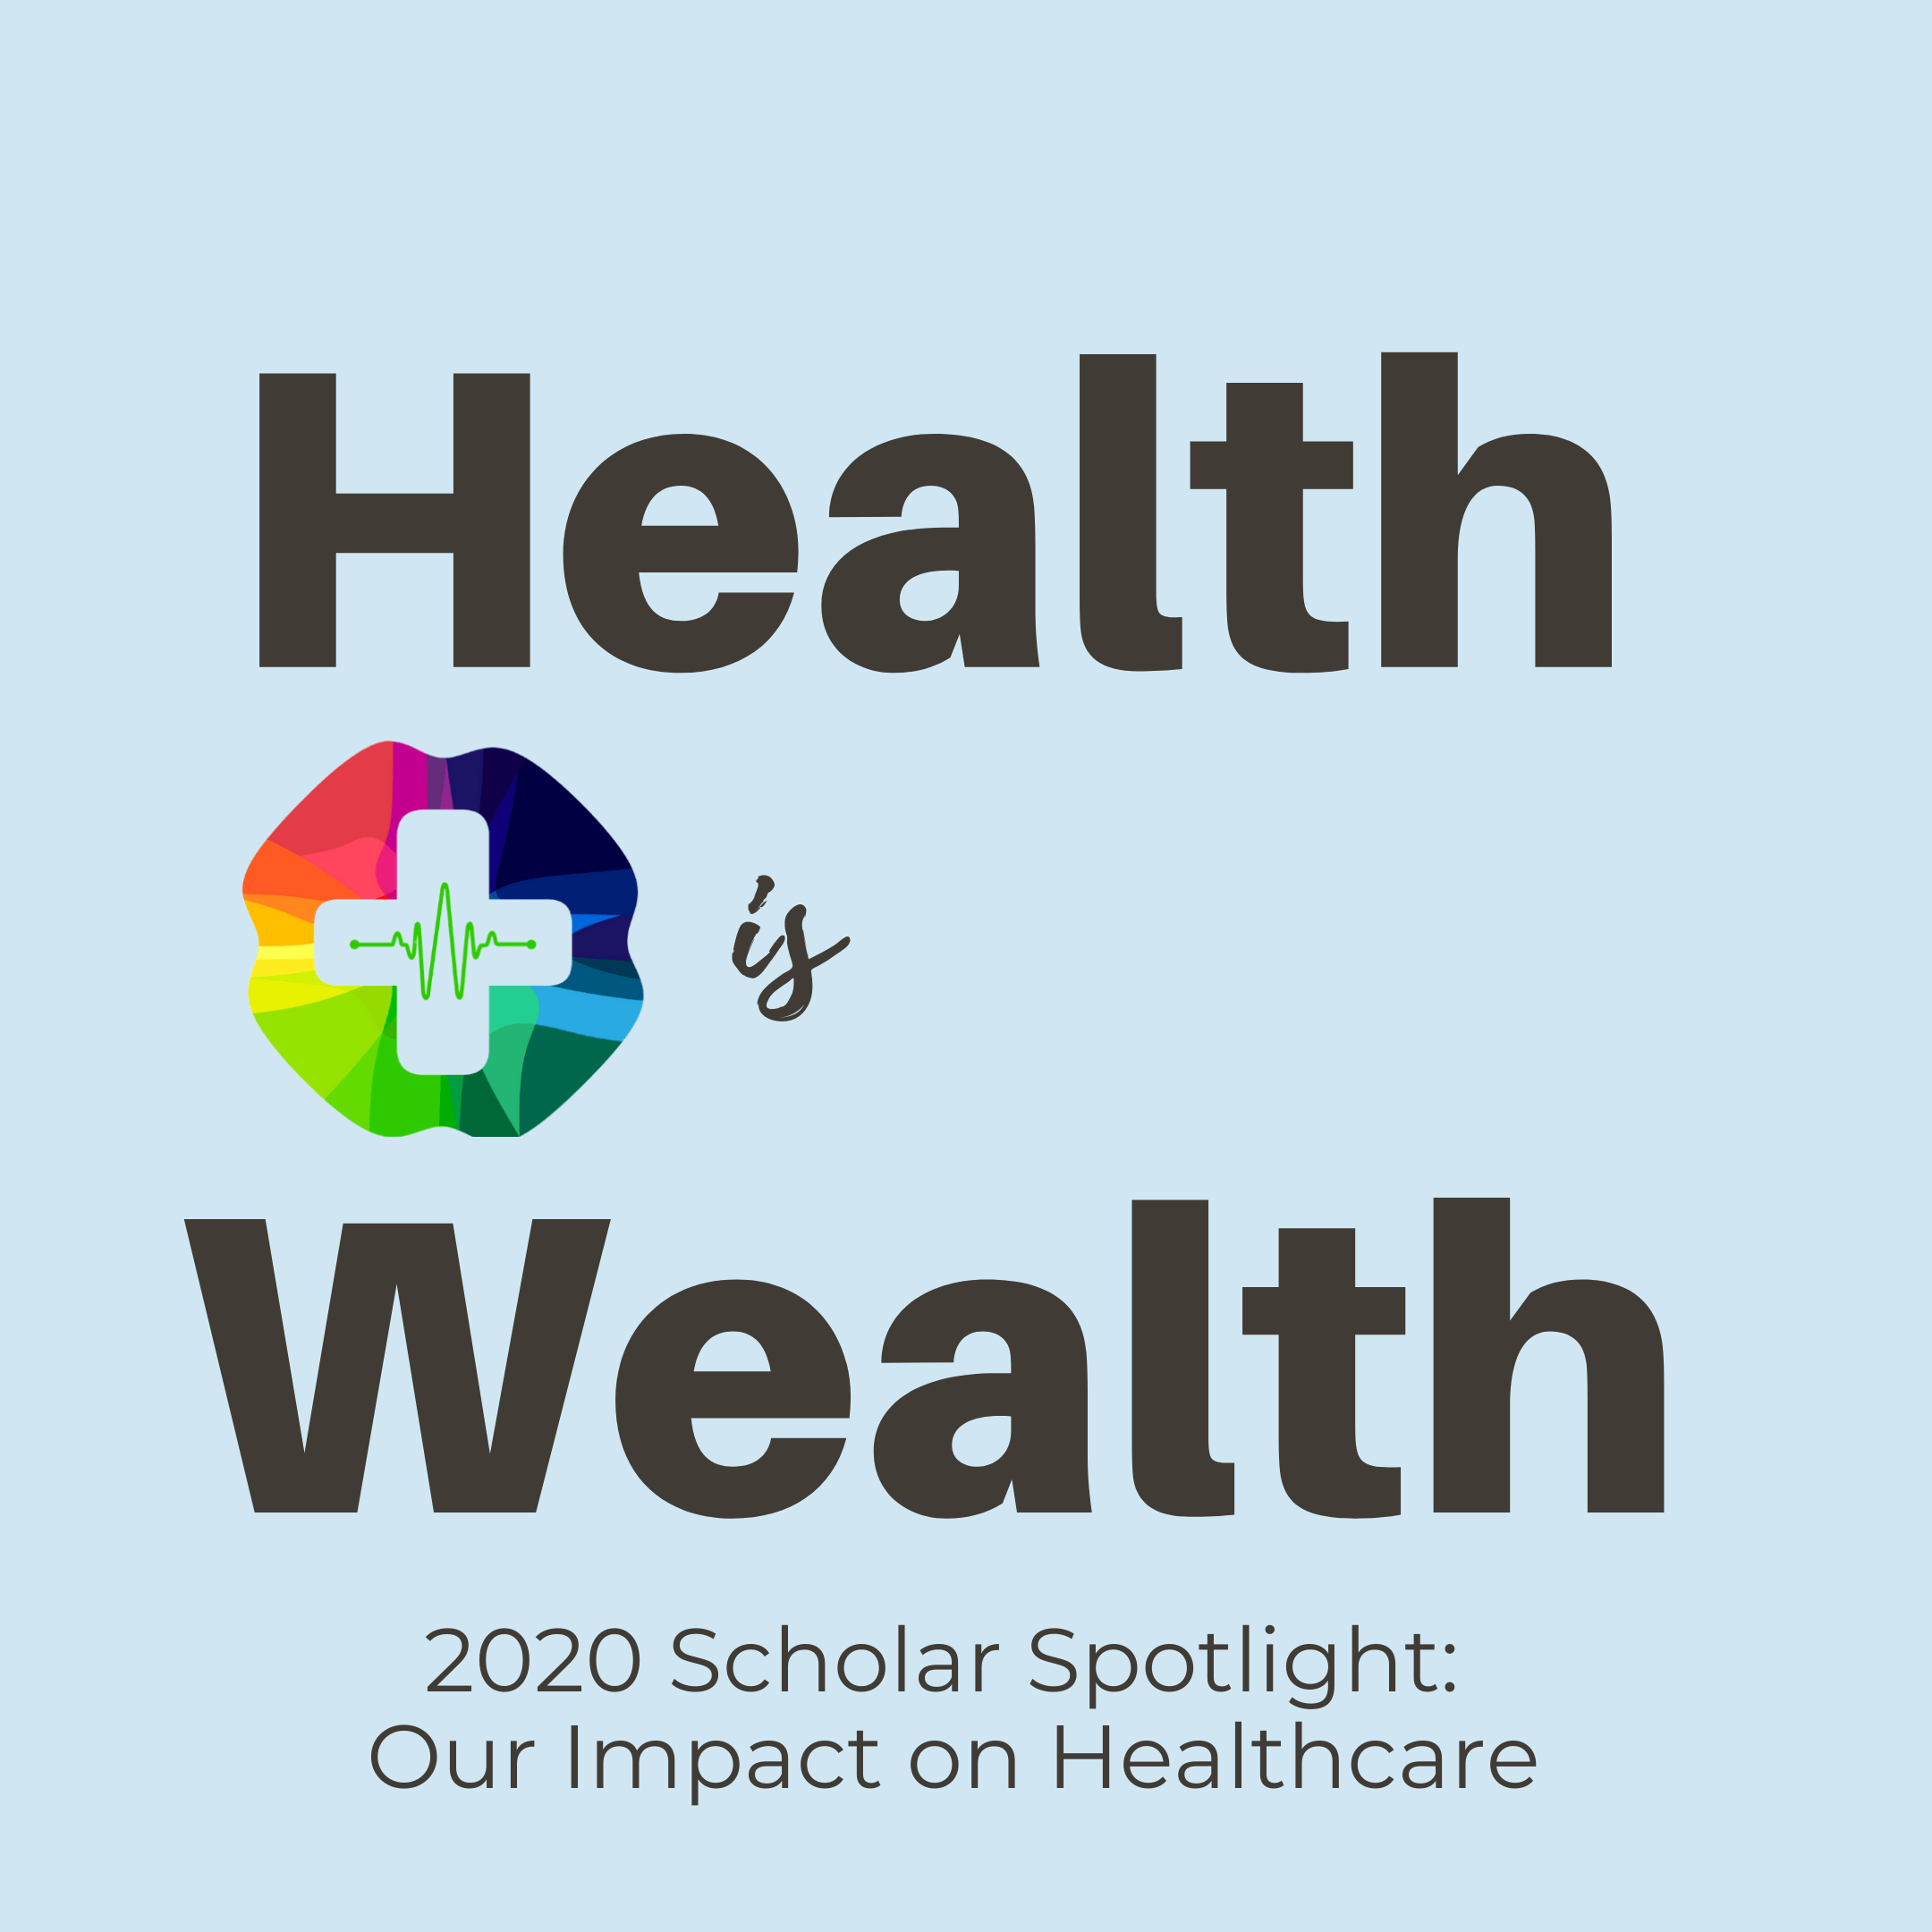 2020 Scholar Spotlight: Our Impact on Healthcare